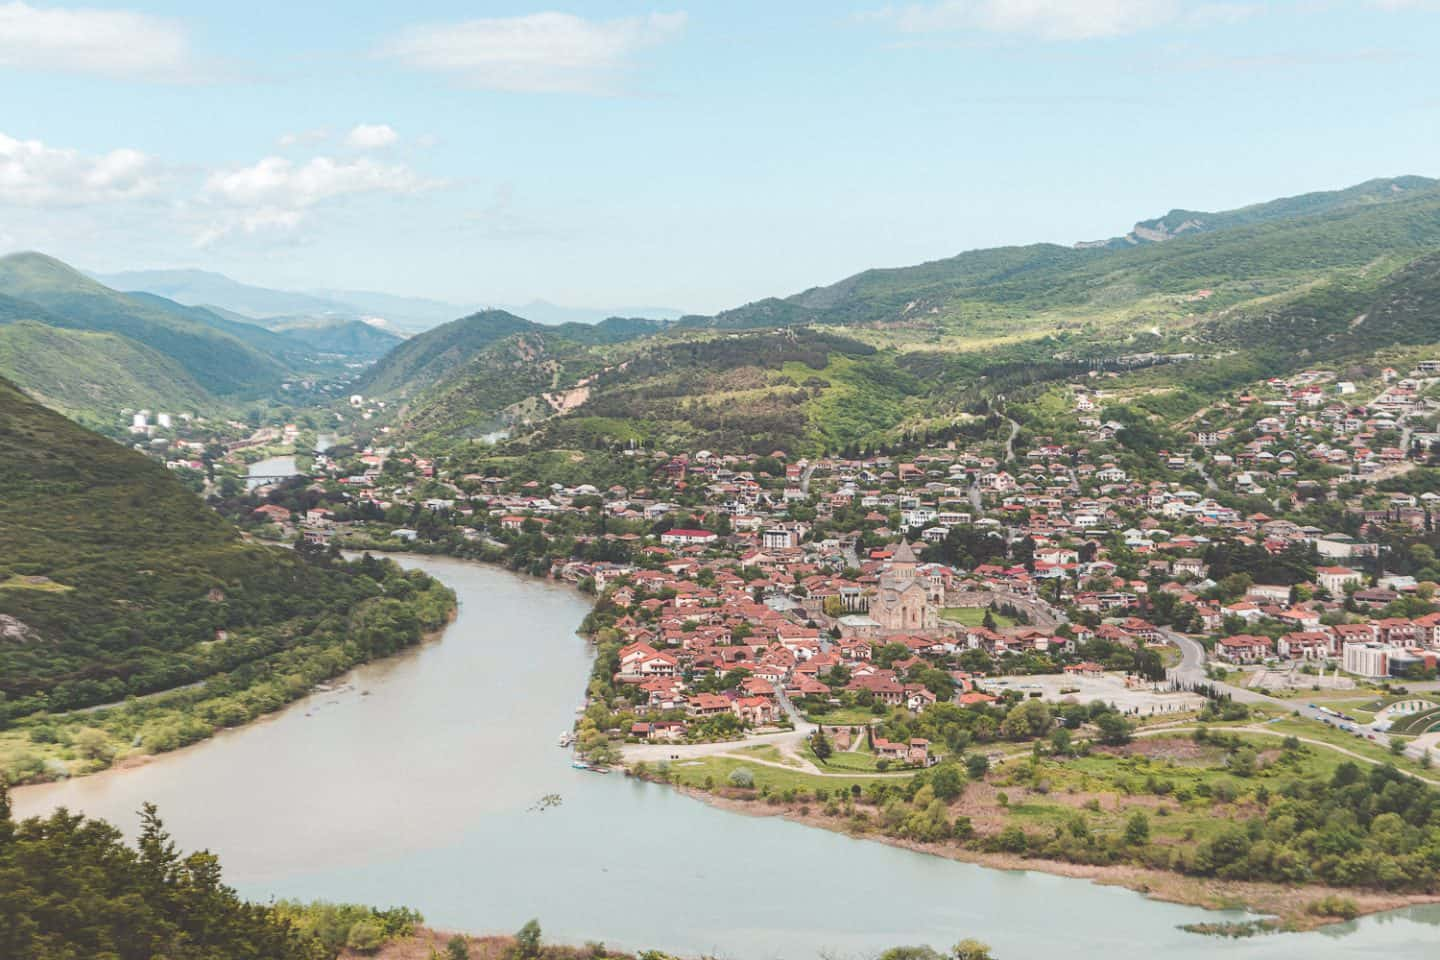 aerial views of the country with a river and small town in the distance